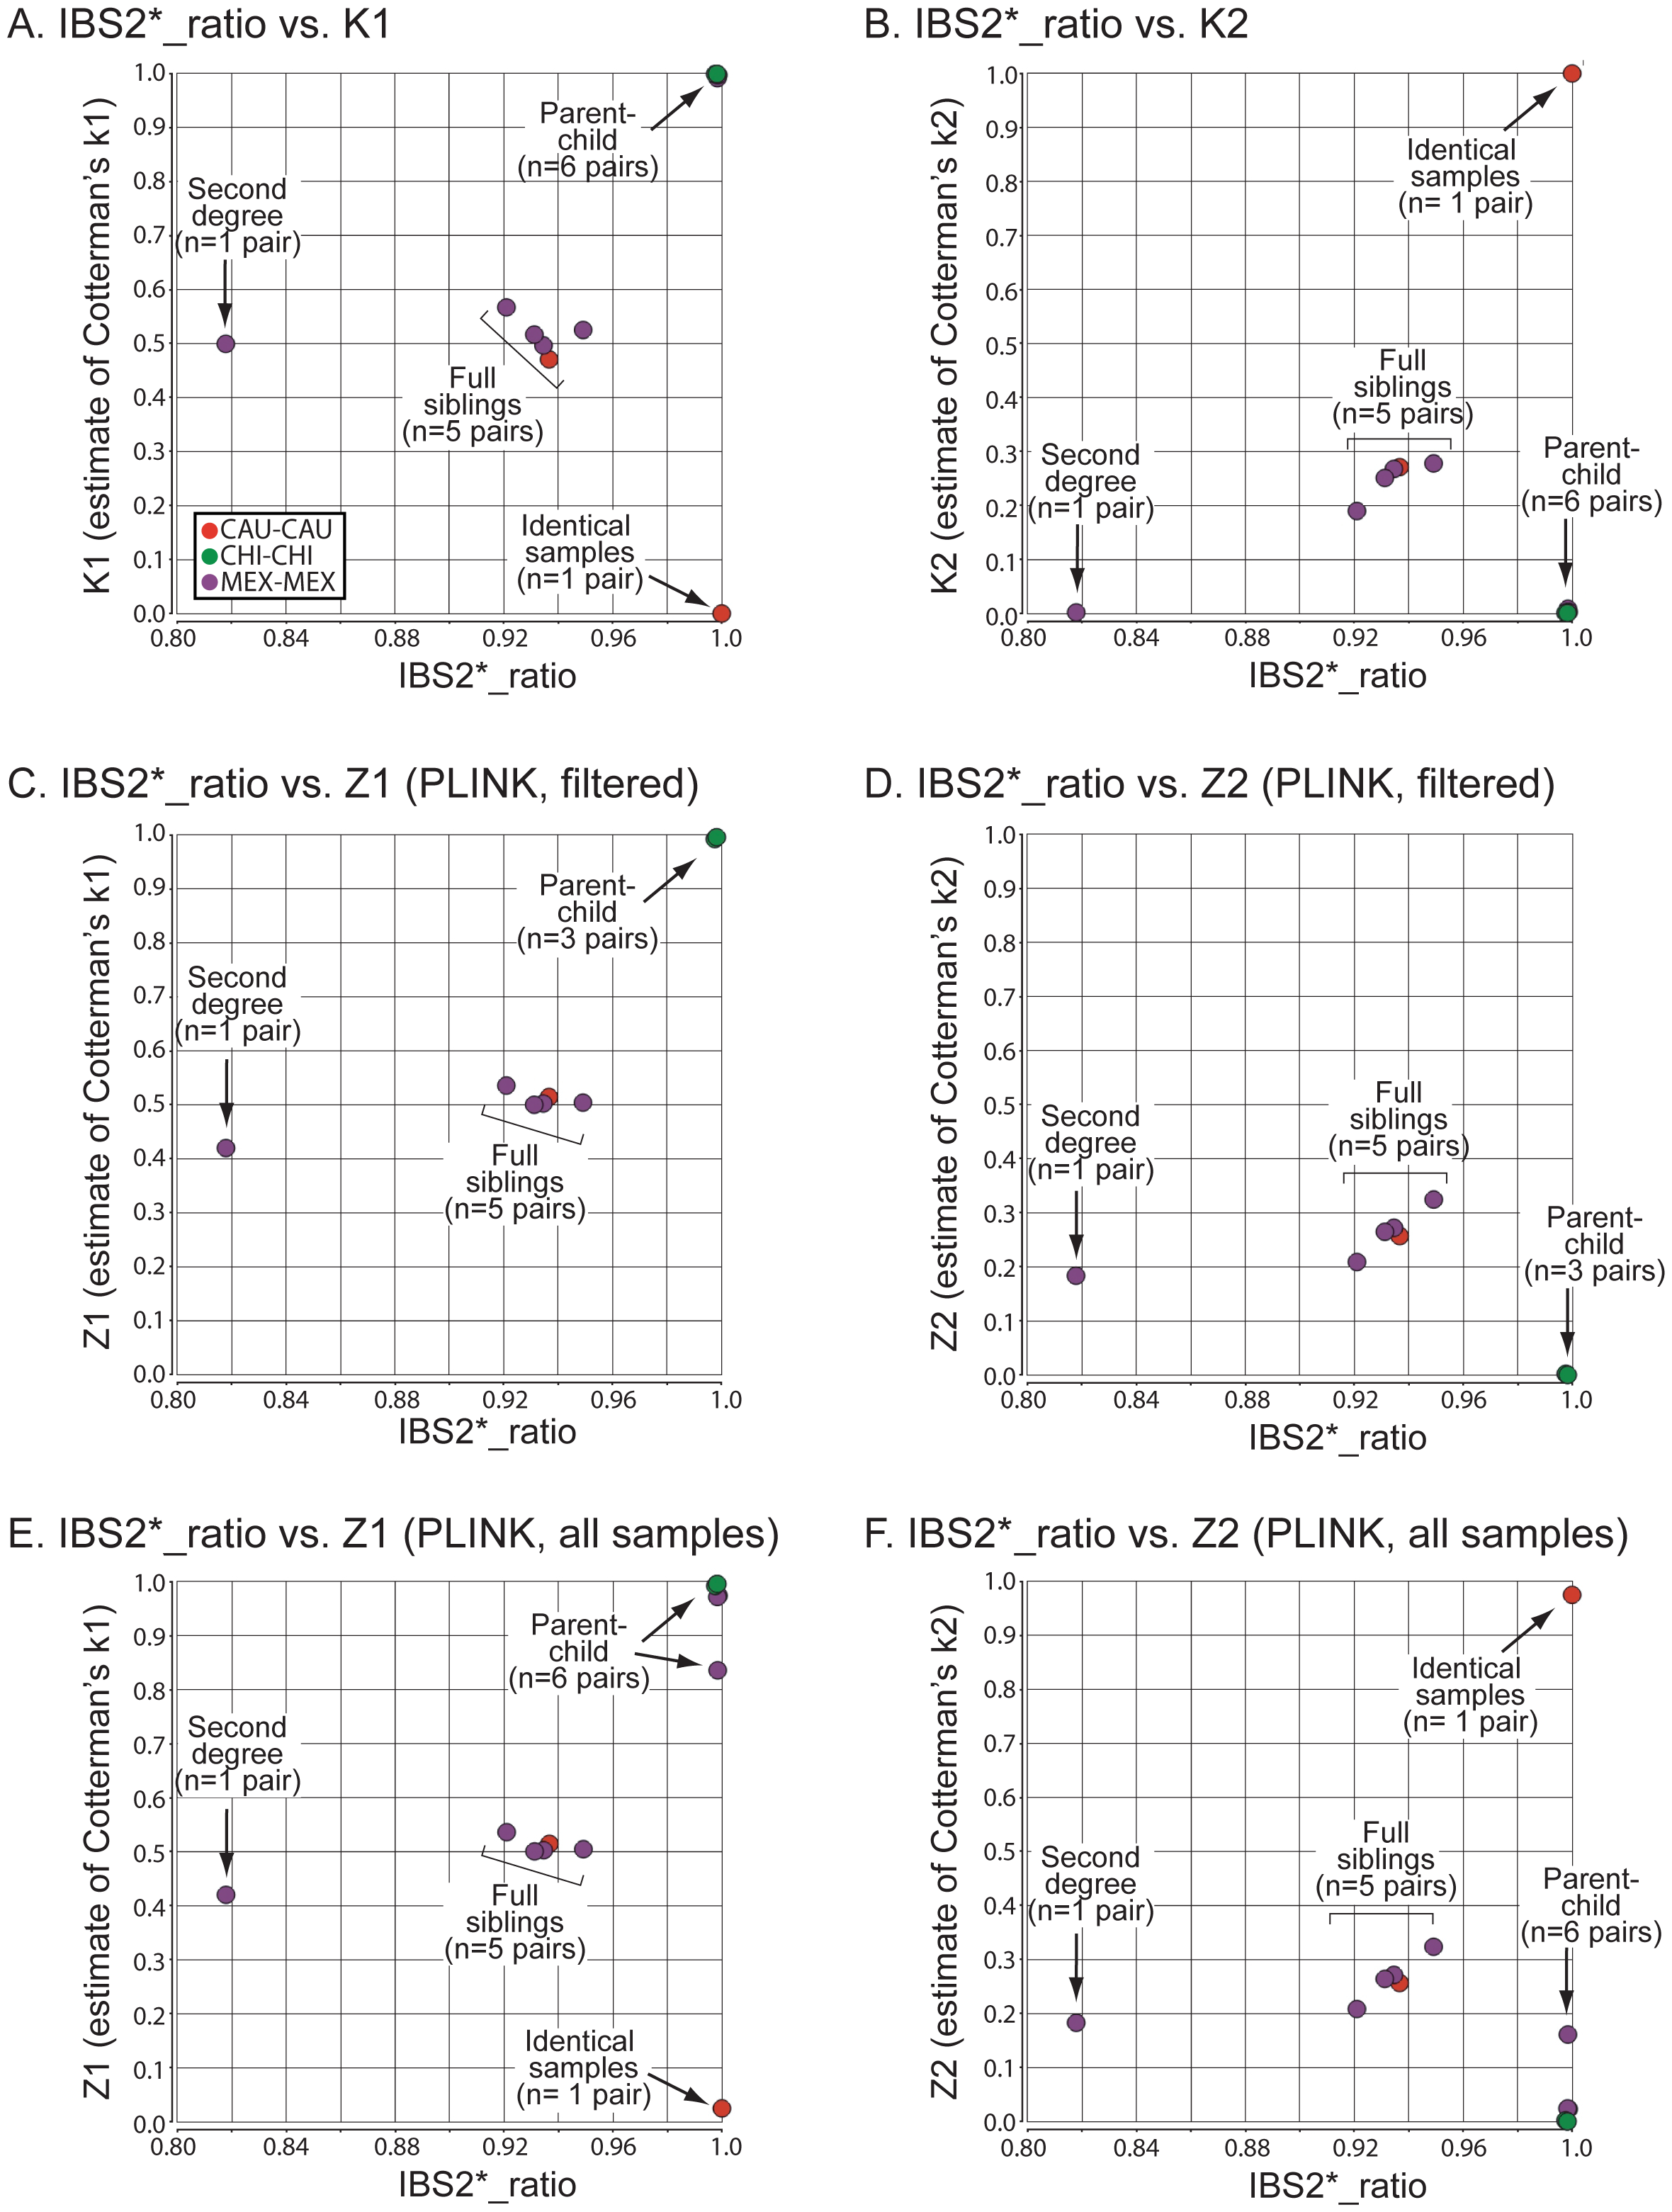 Relationship of IBS2* values to IBD estimates for recently related within-group comparisons.